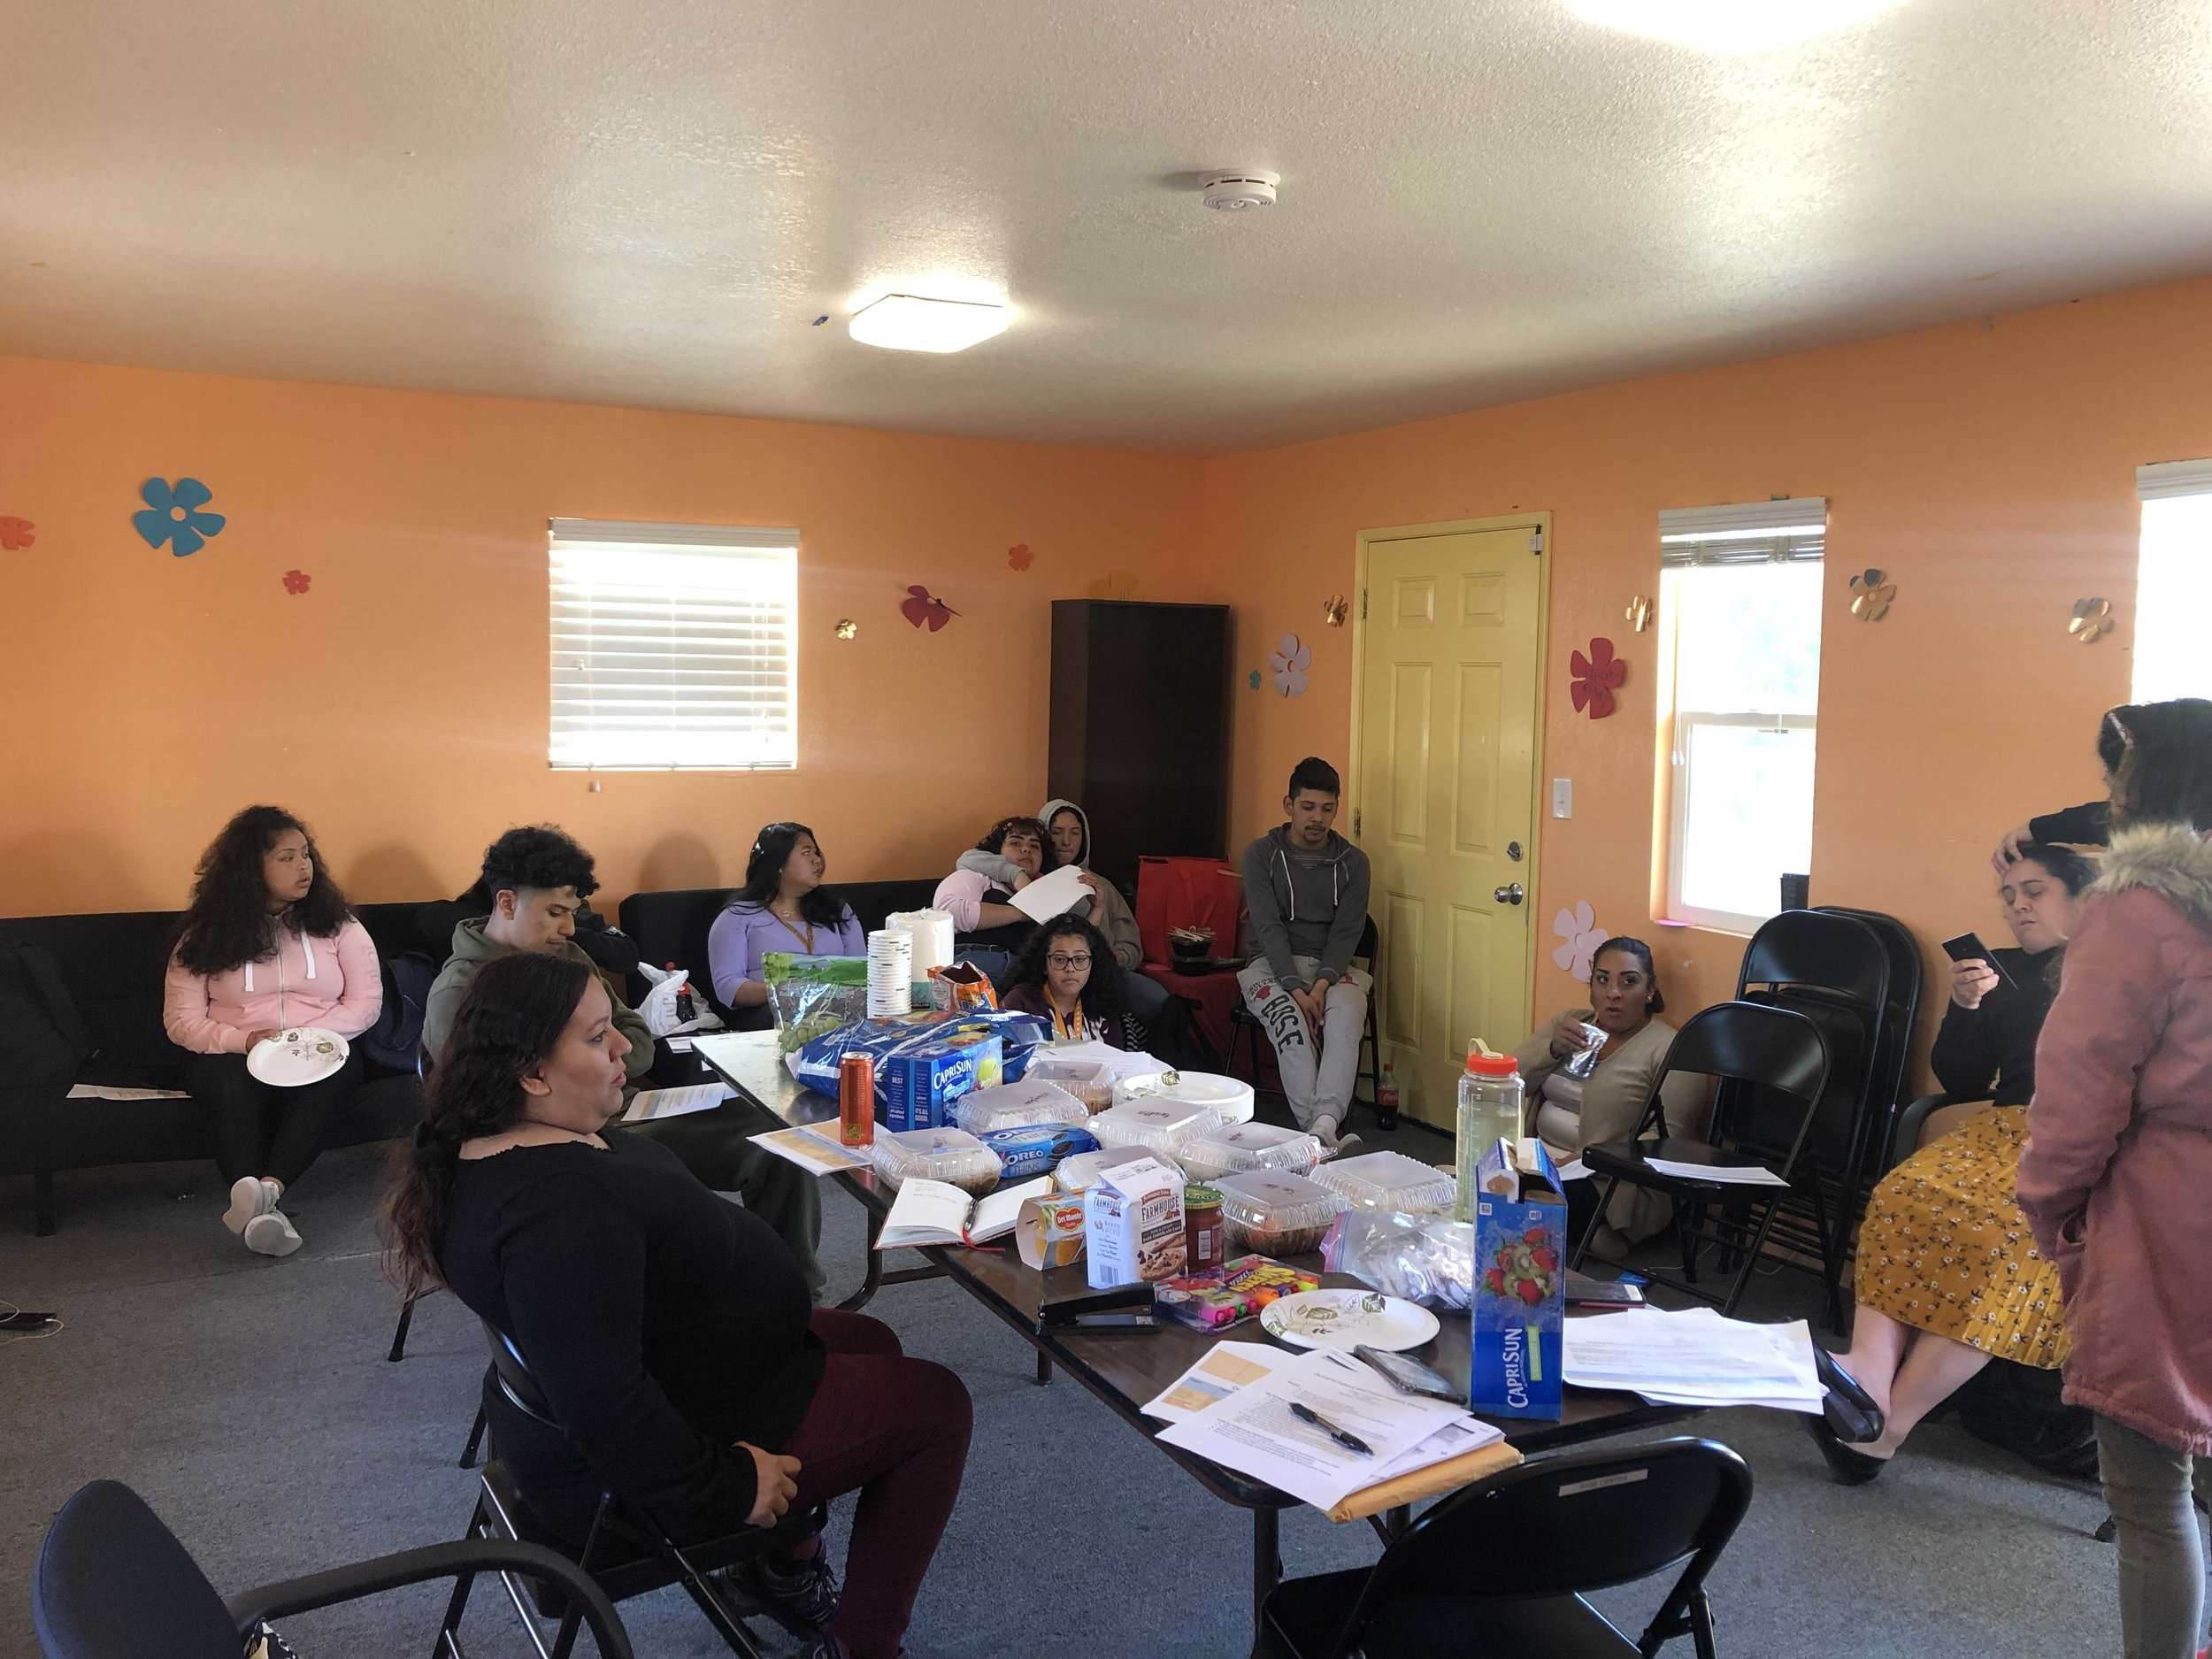 Youth Organizers prepare students and parents for district meeting